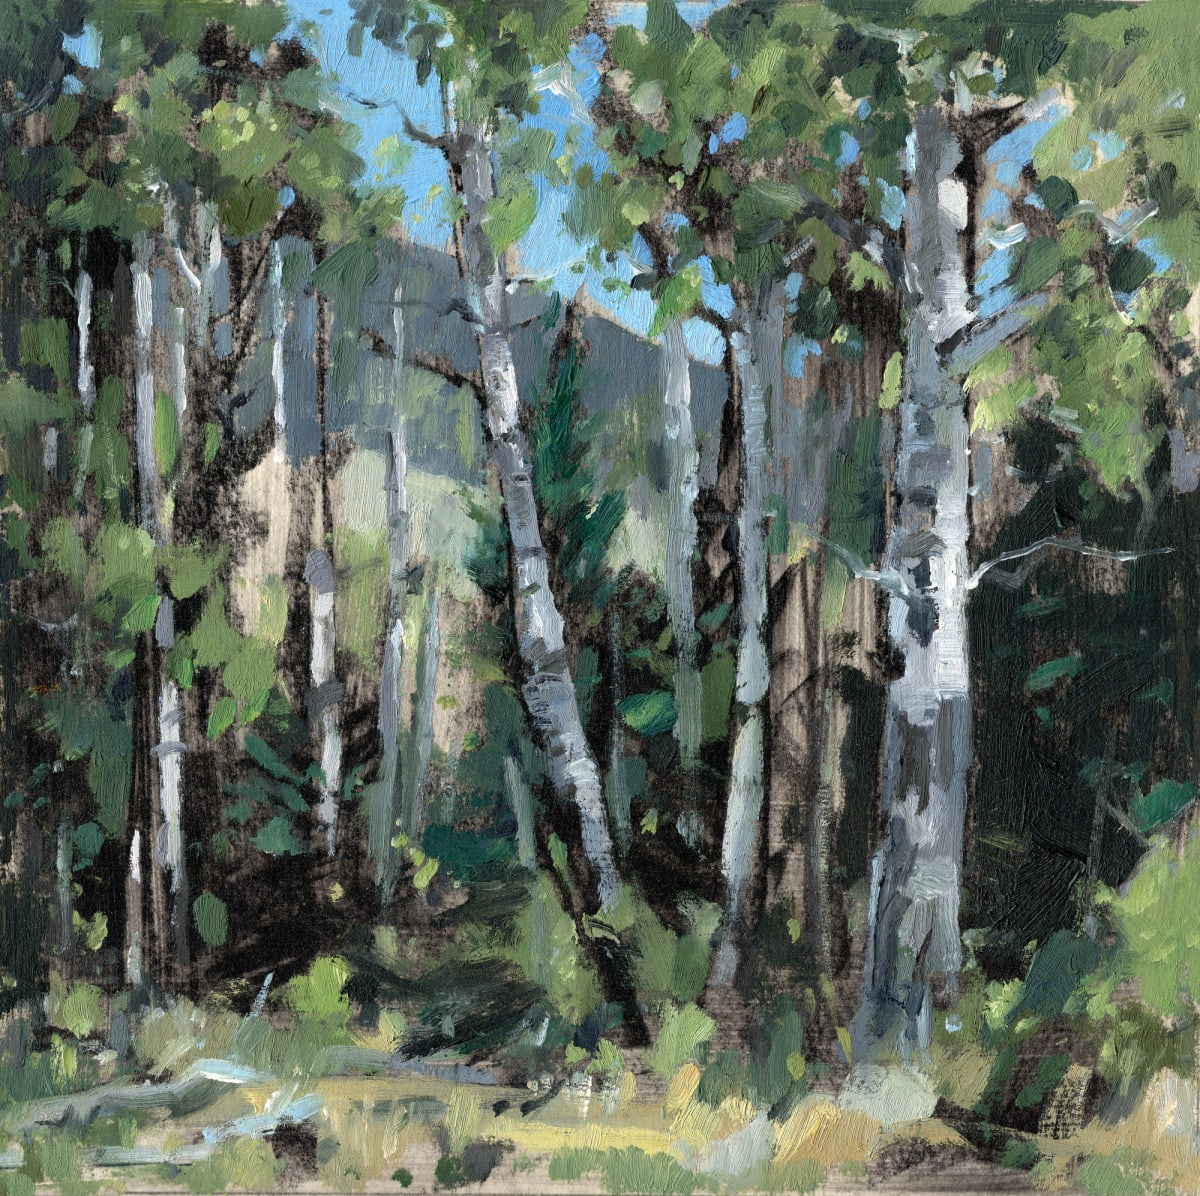 Jared Shear, Aspens On The Bob, 2018